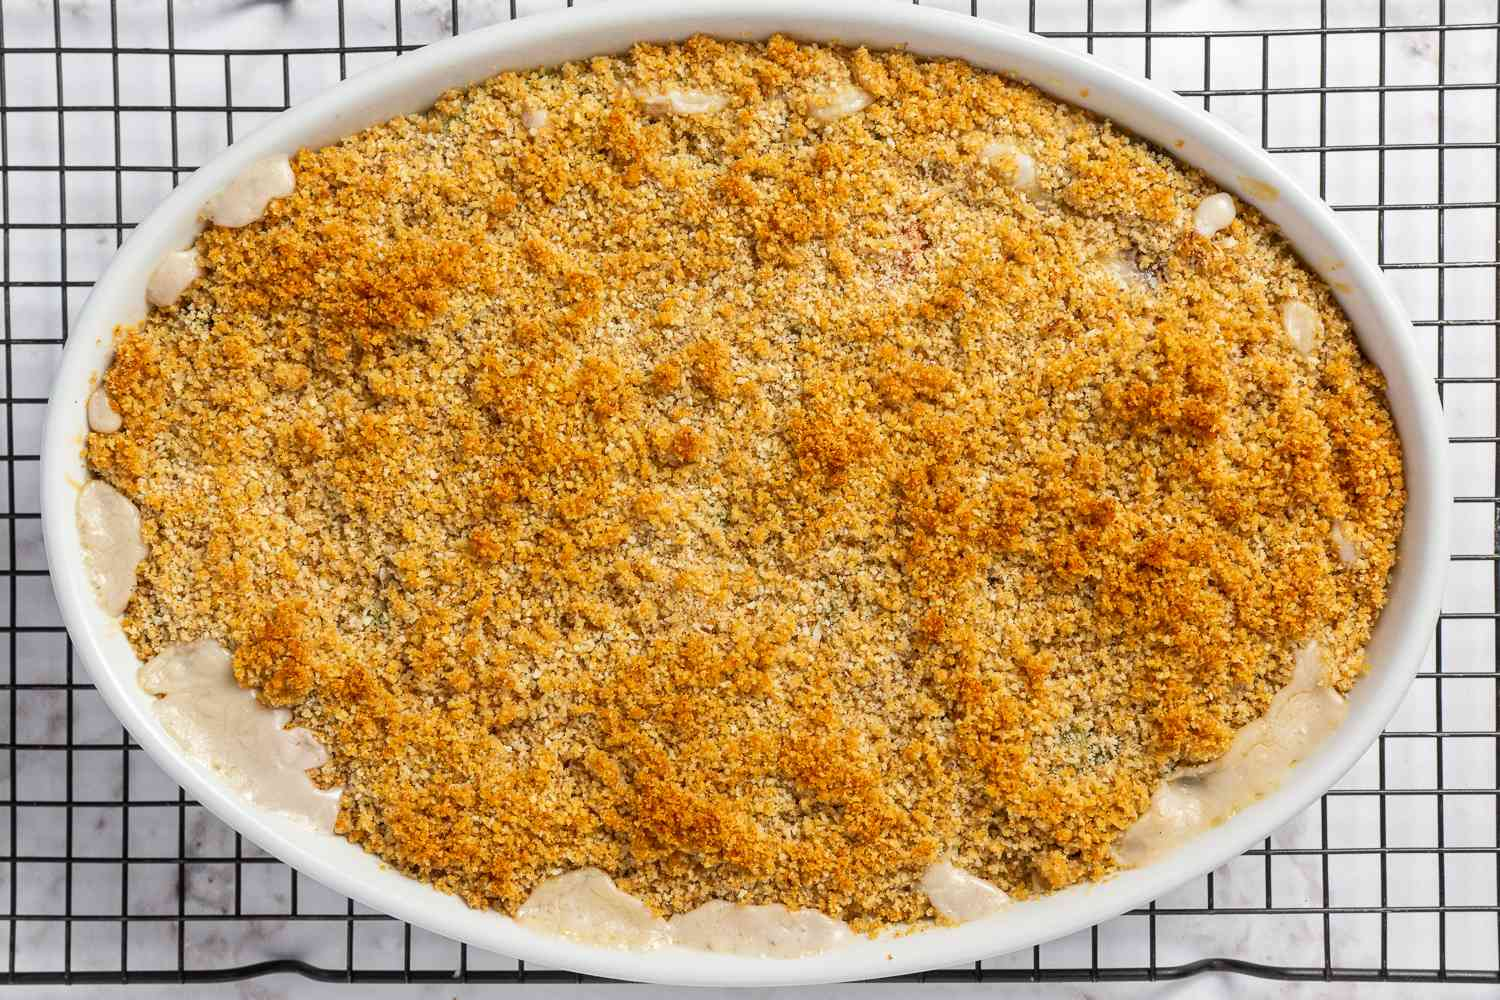 Scalloped Vegetable Casserole on a cooling rack